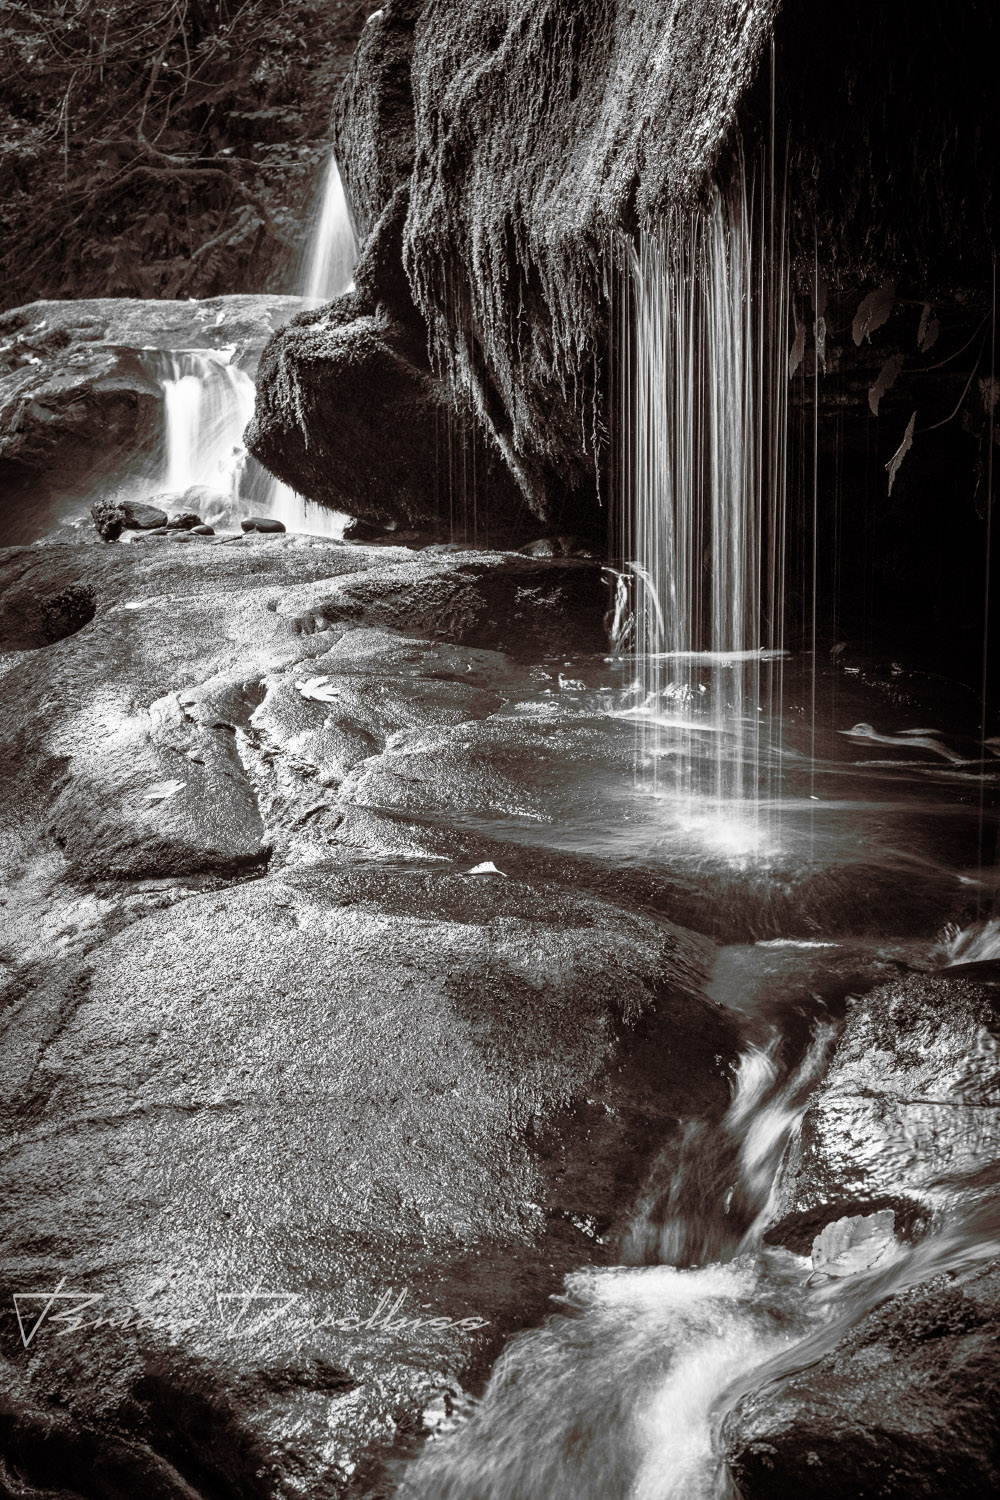 Thin waterfalls over dark rock viewed from the side in Oregon in black and white.